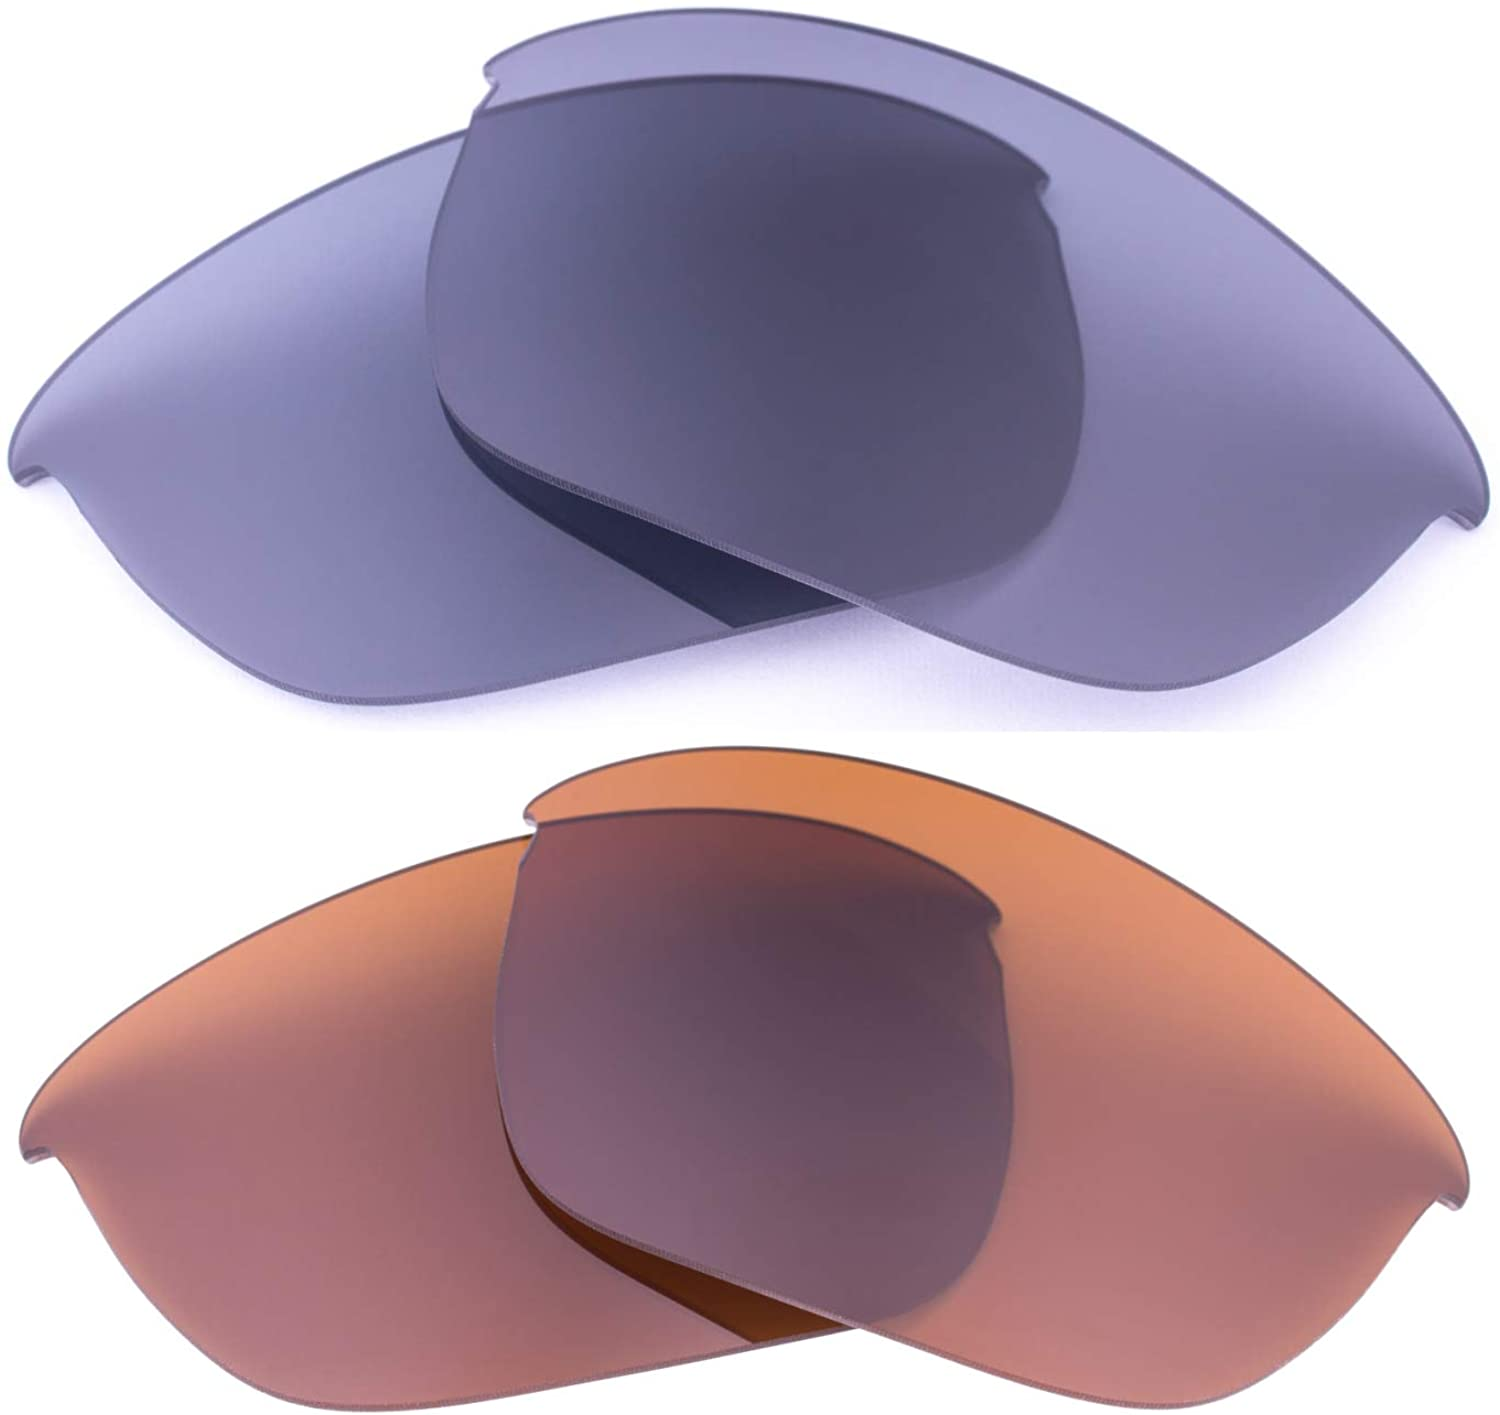 LenzFlip Replacement Lenses for Oakley Half Jacket 2.0 - Crafted in the USA (2pack(Light Grey/Brown)